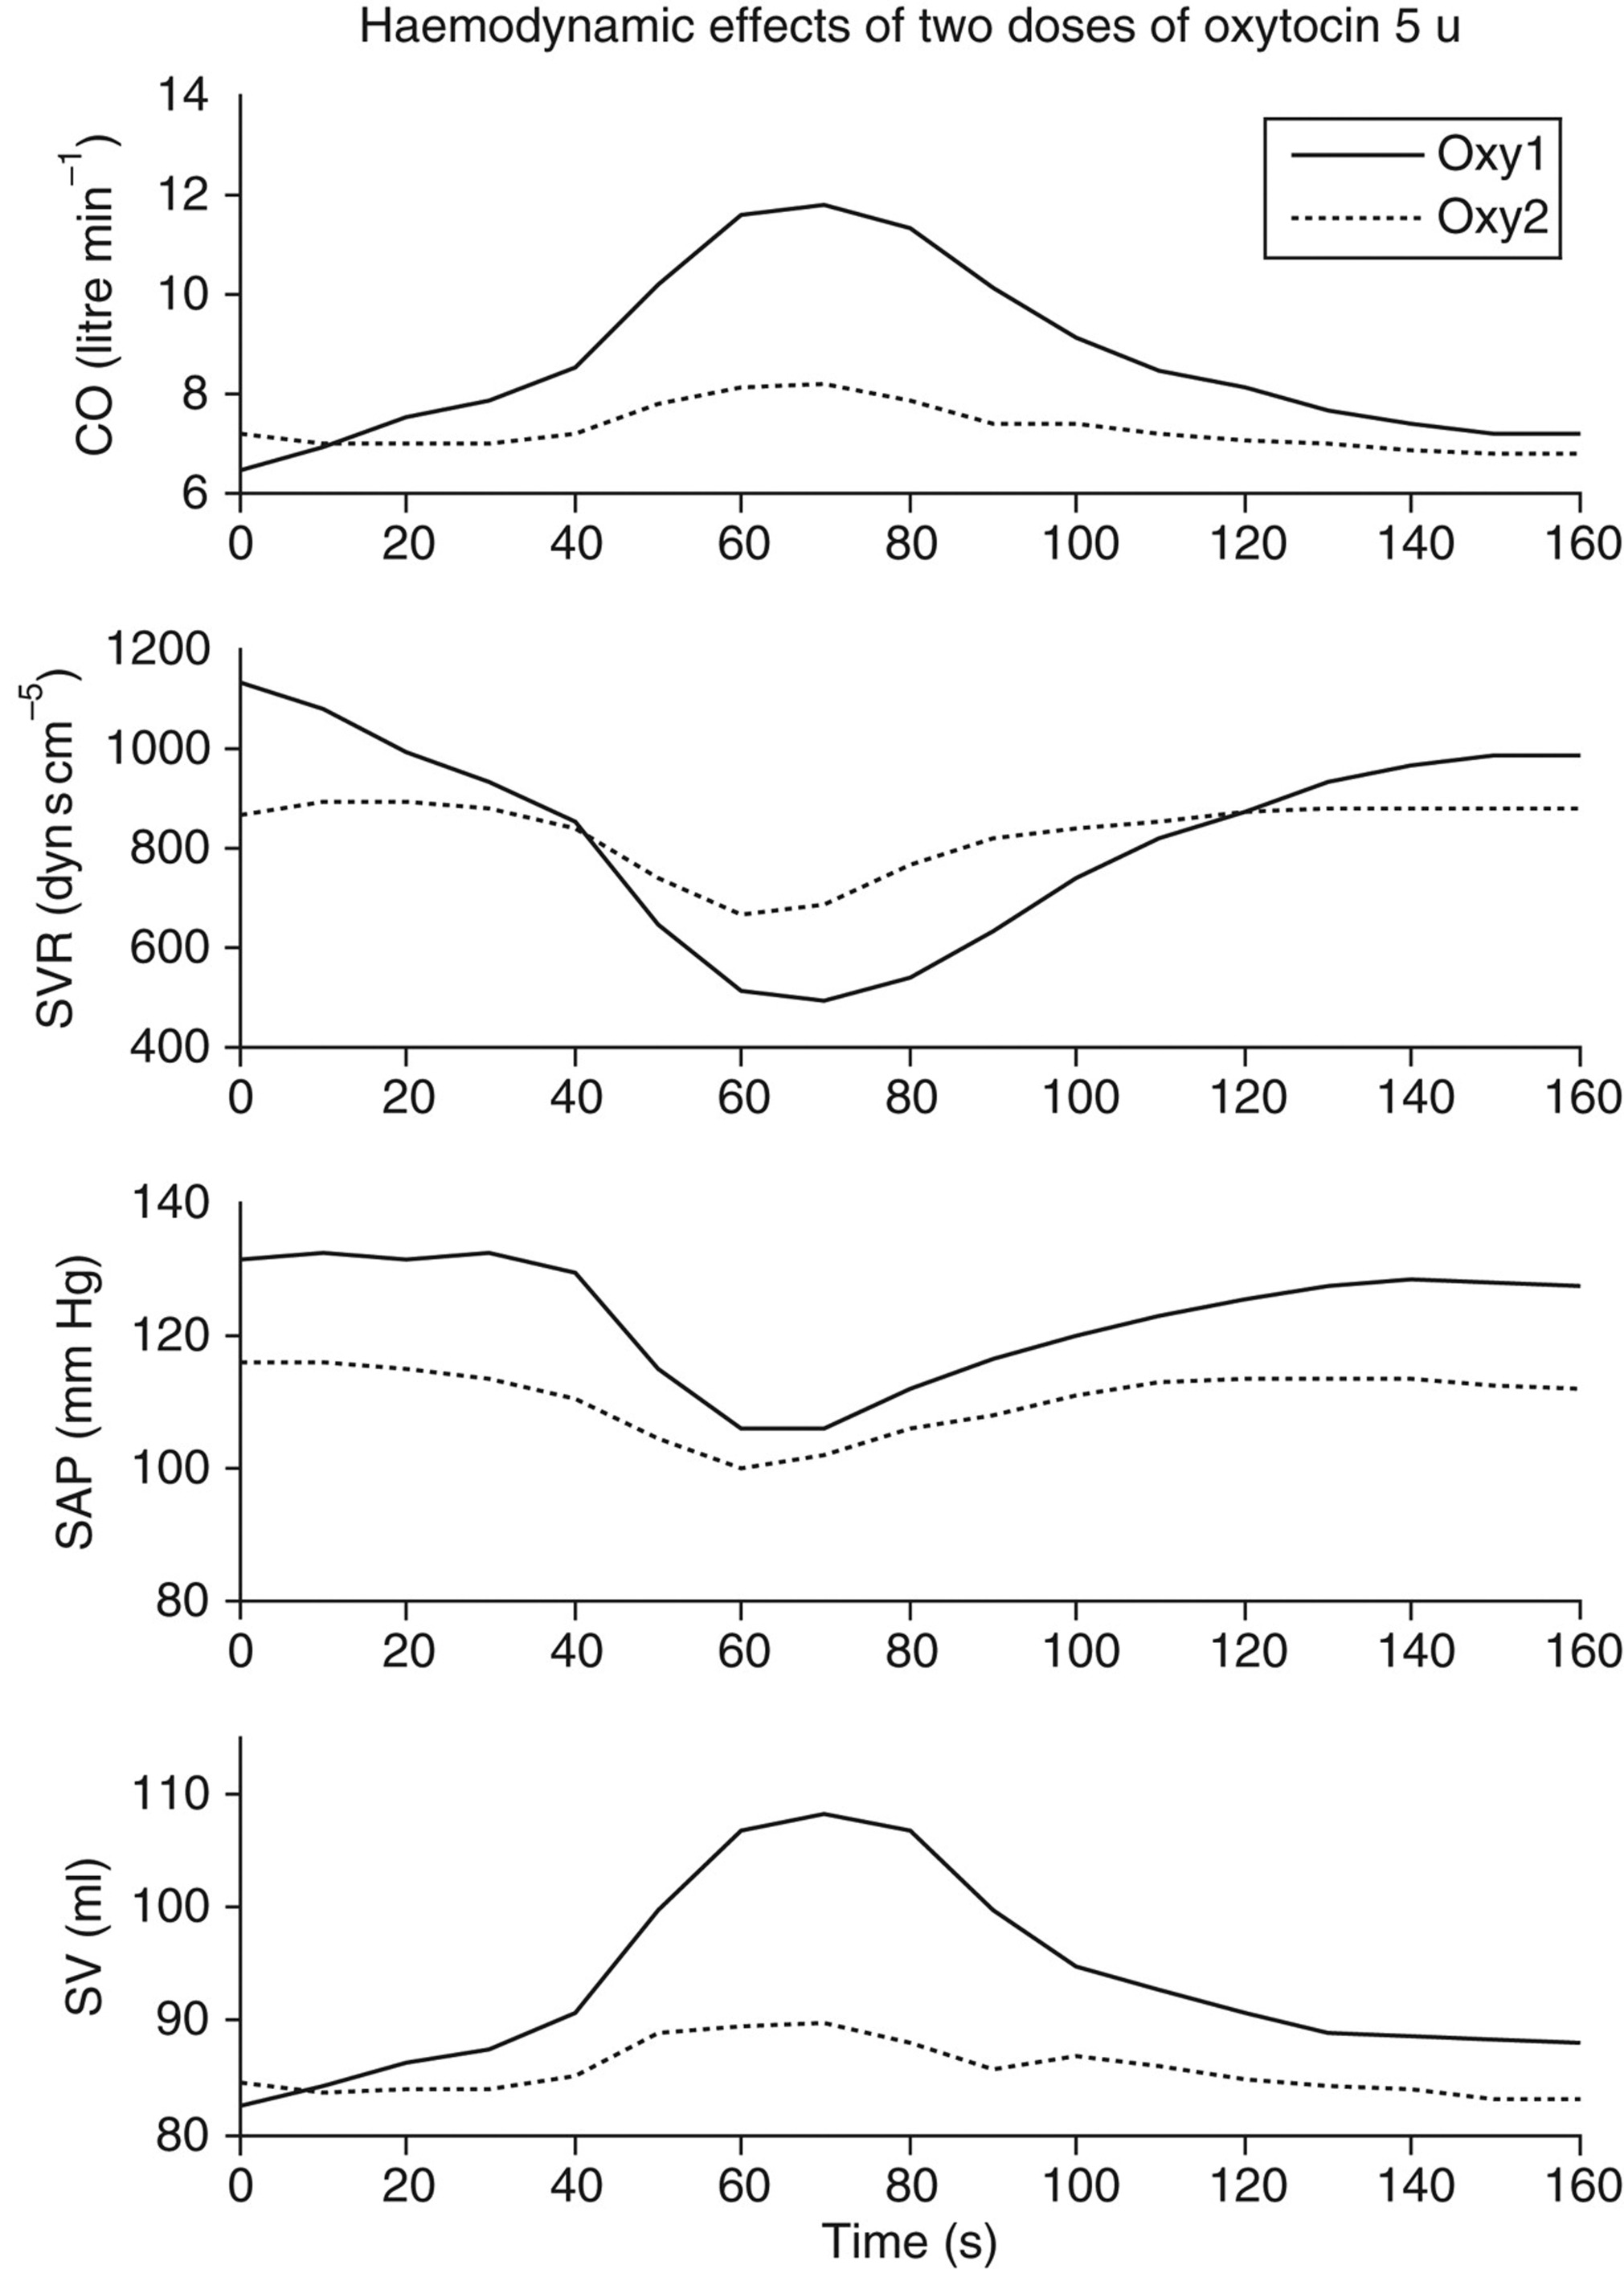 Haemodynamic effects of repeated doses of oxytocin during